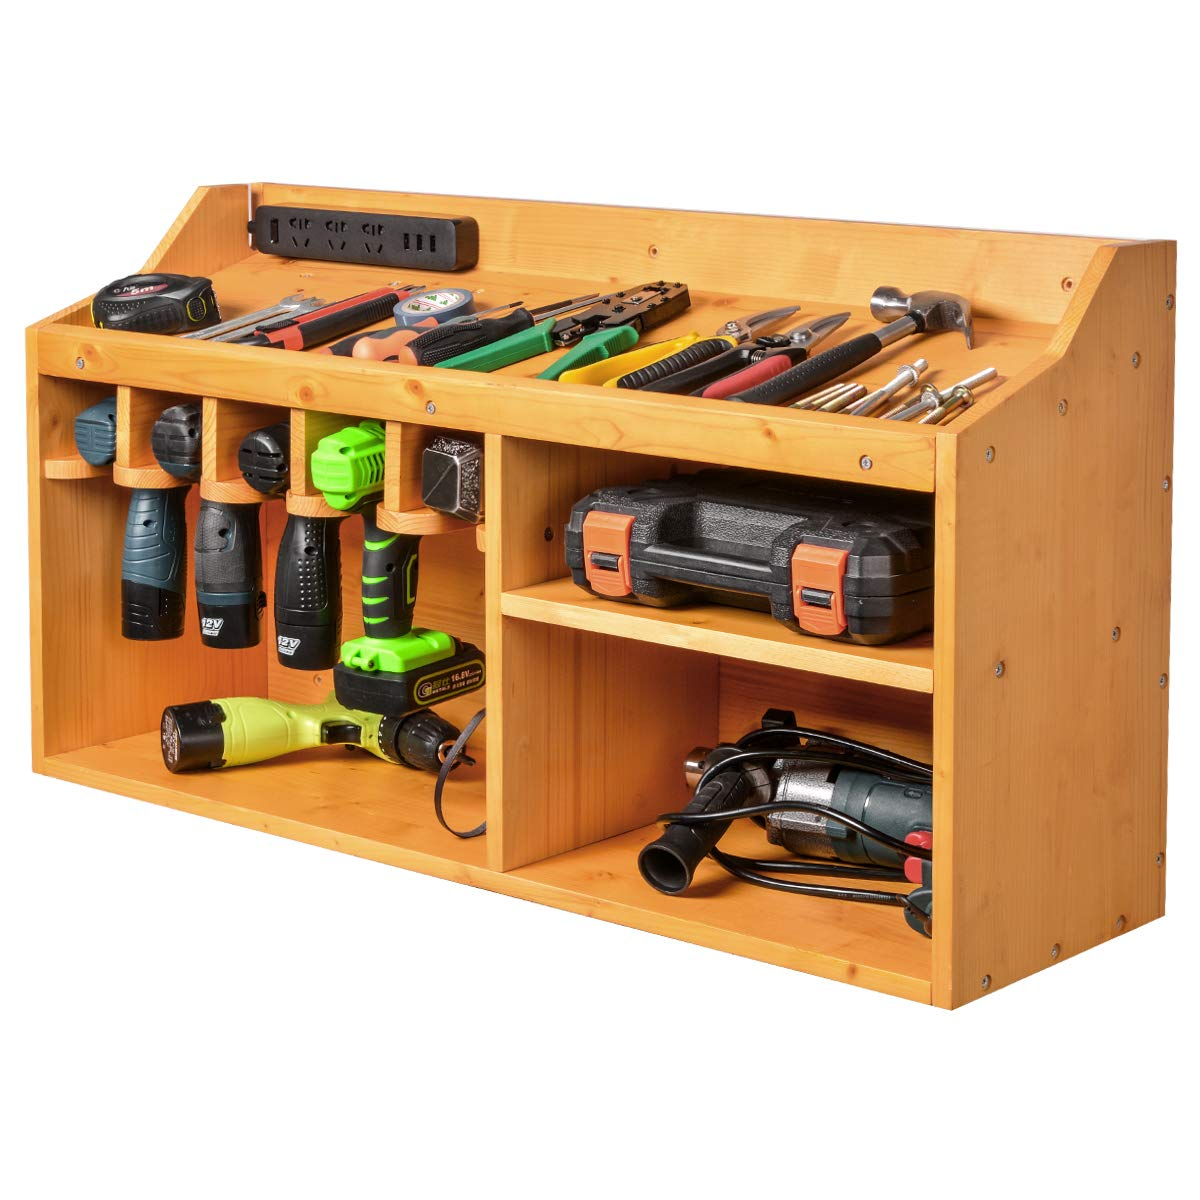 Power Tools Storage Organizers and Cabinets, Drill Charging Station, 5 Drill Hanging Slots, Wall Mount Impact Drivers Storage Dock with Widened Room for Circular Saw, Impact Wrench, Screwdriver Drill by XCSOURCE